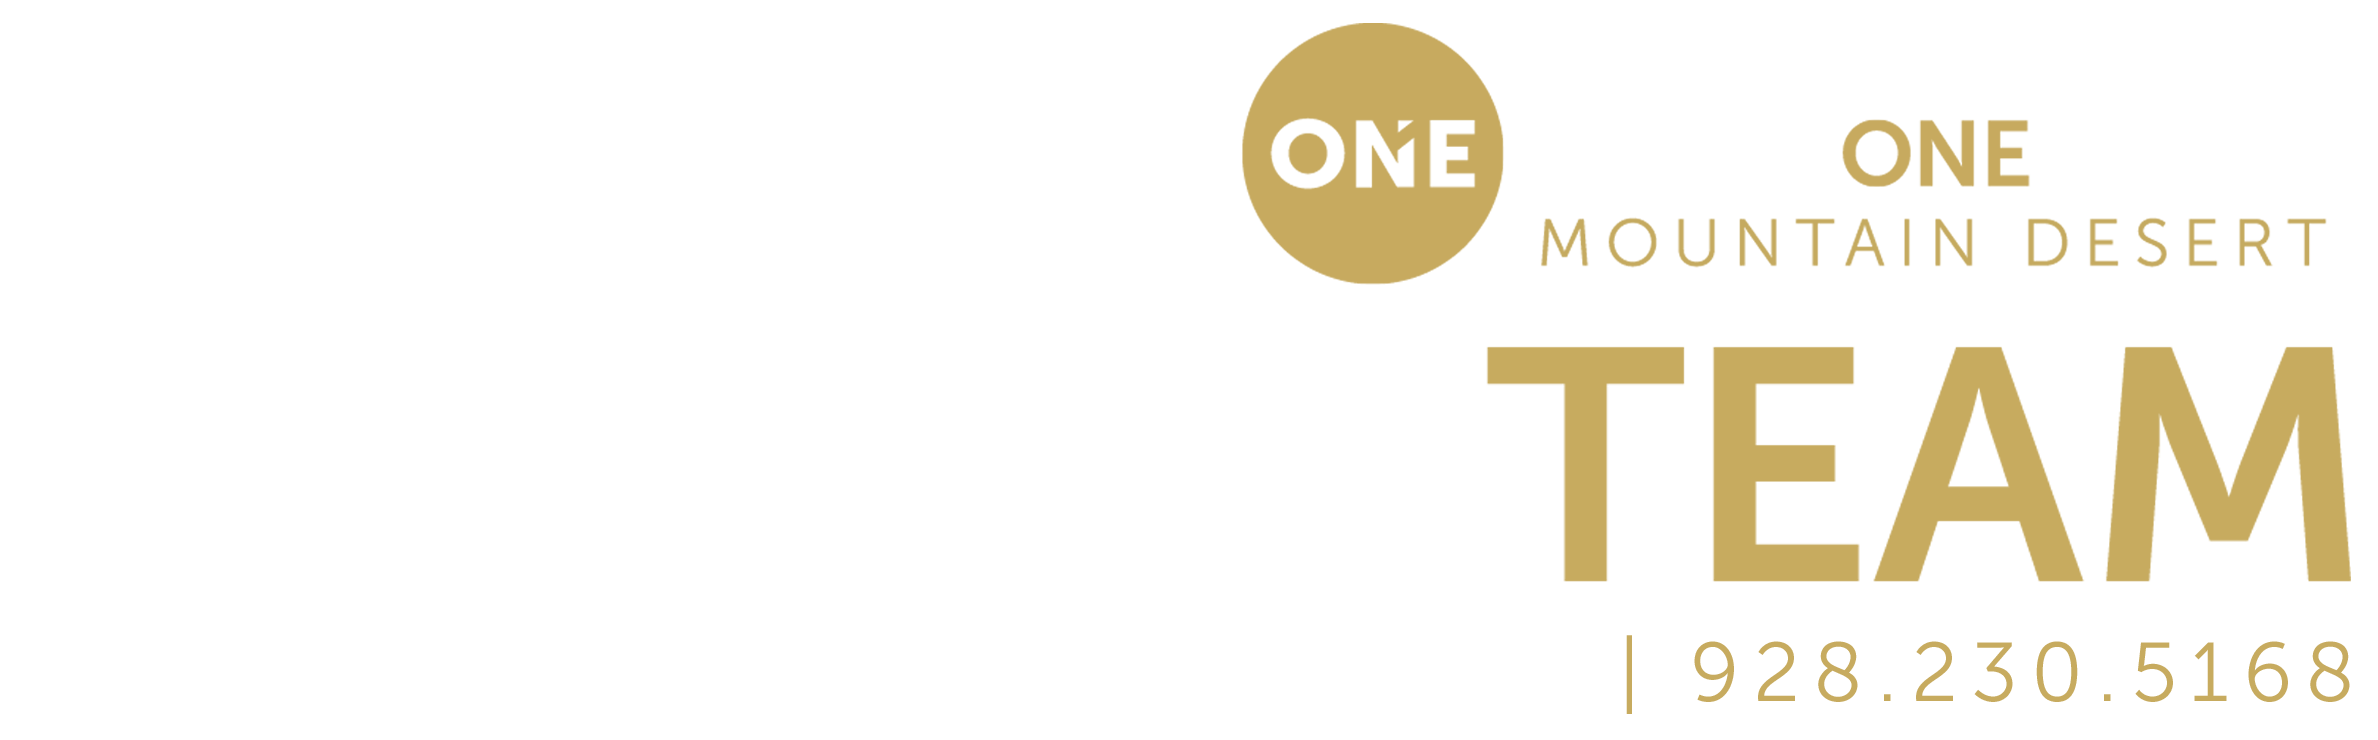 Flagstaff Real Estate Agents Logo | The COLLINS TEAM